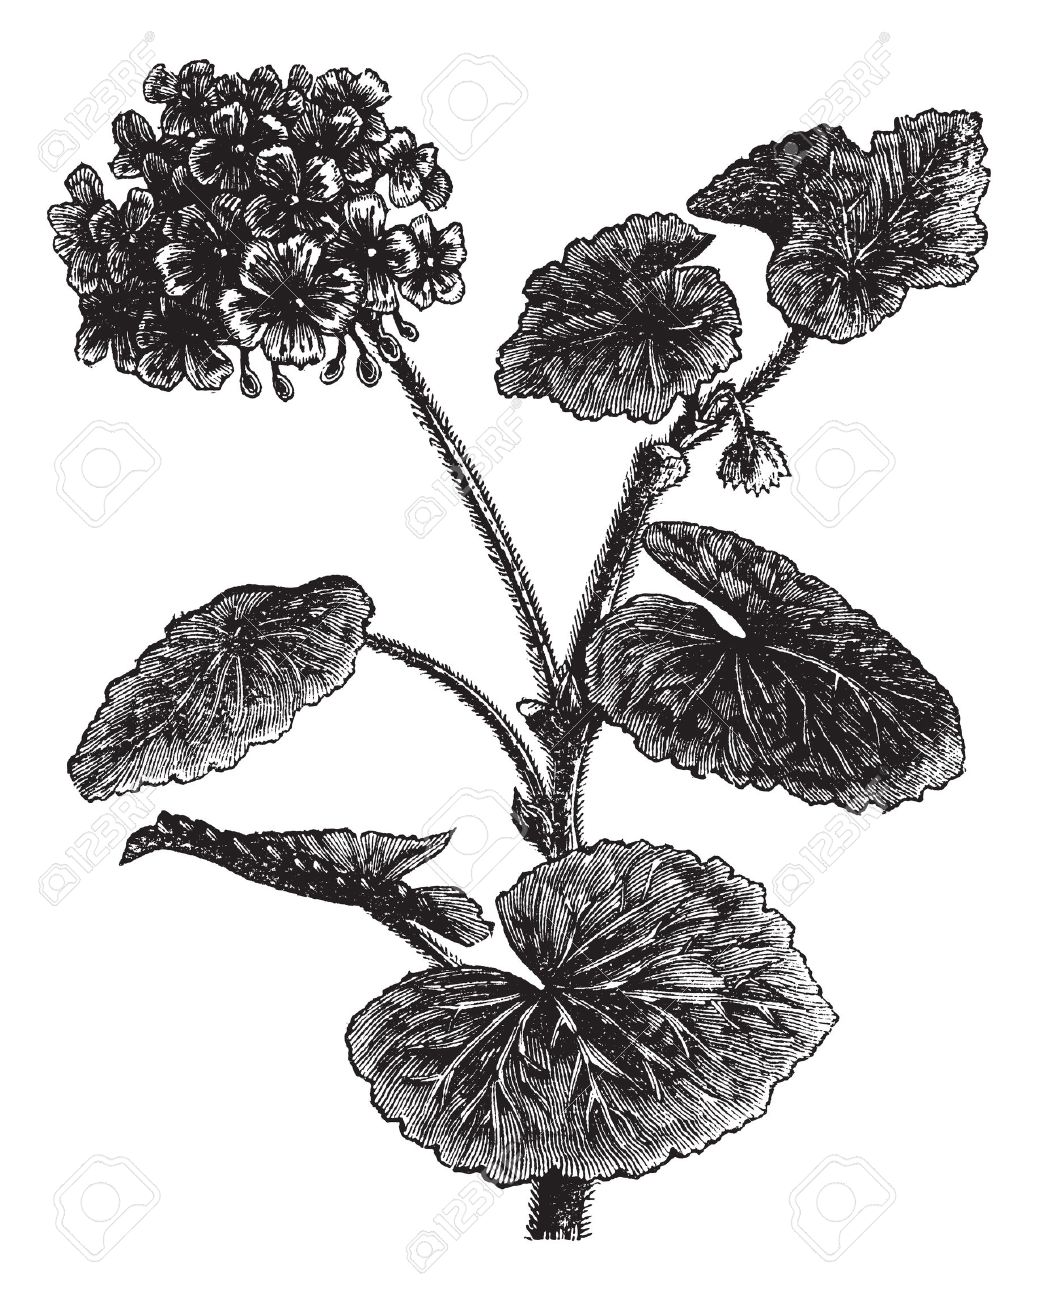 Geranium clipart #17, Download drawings